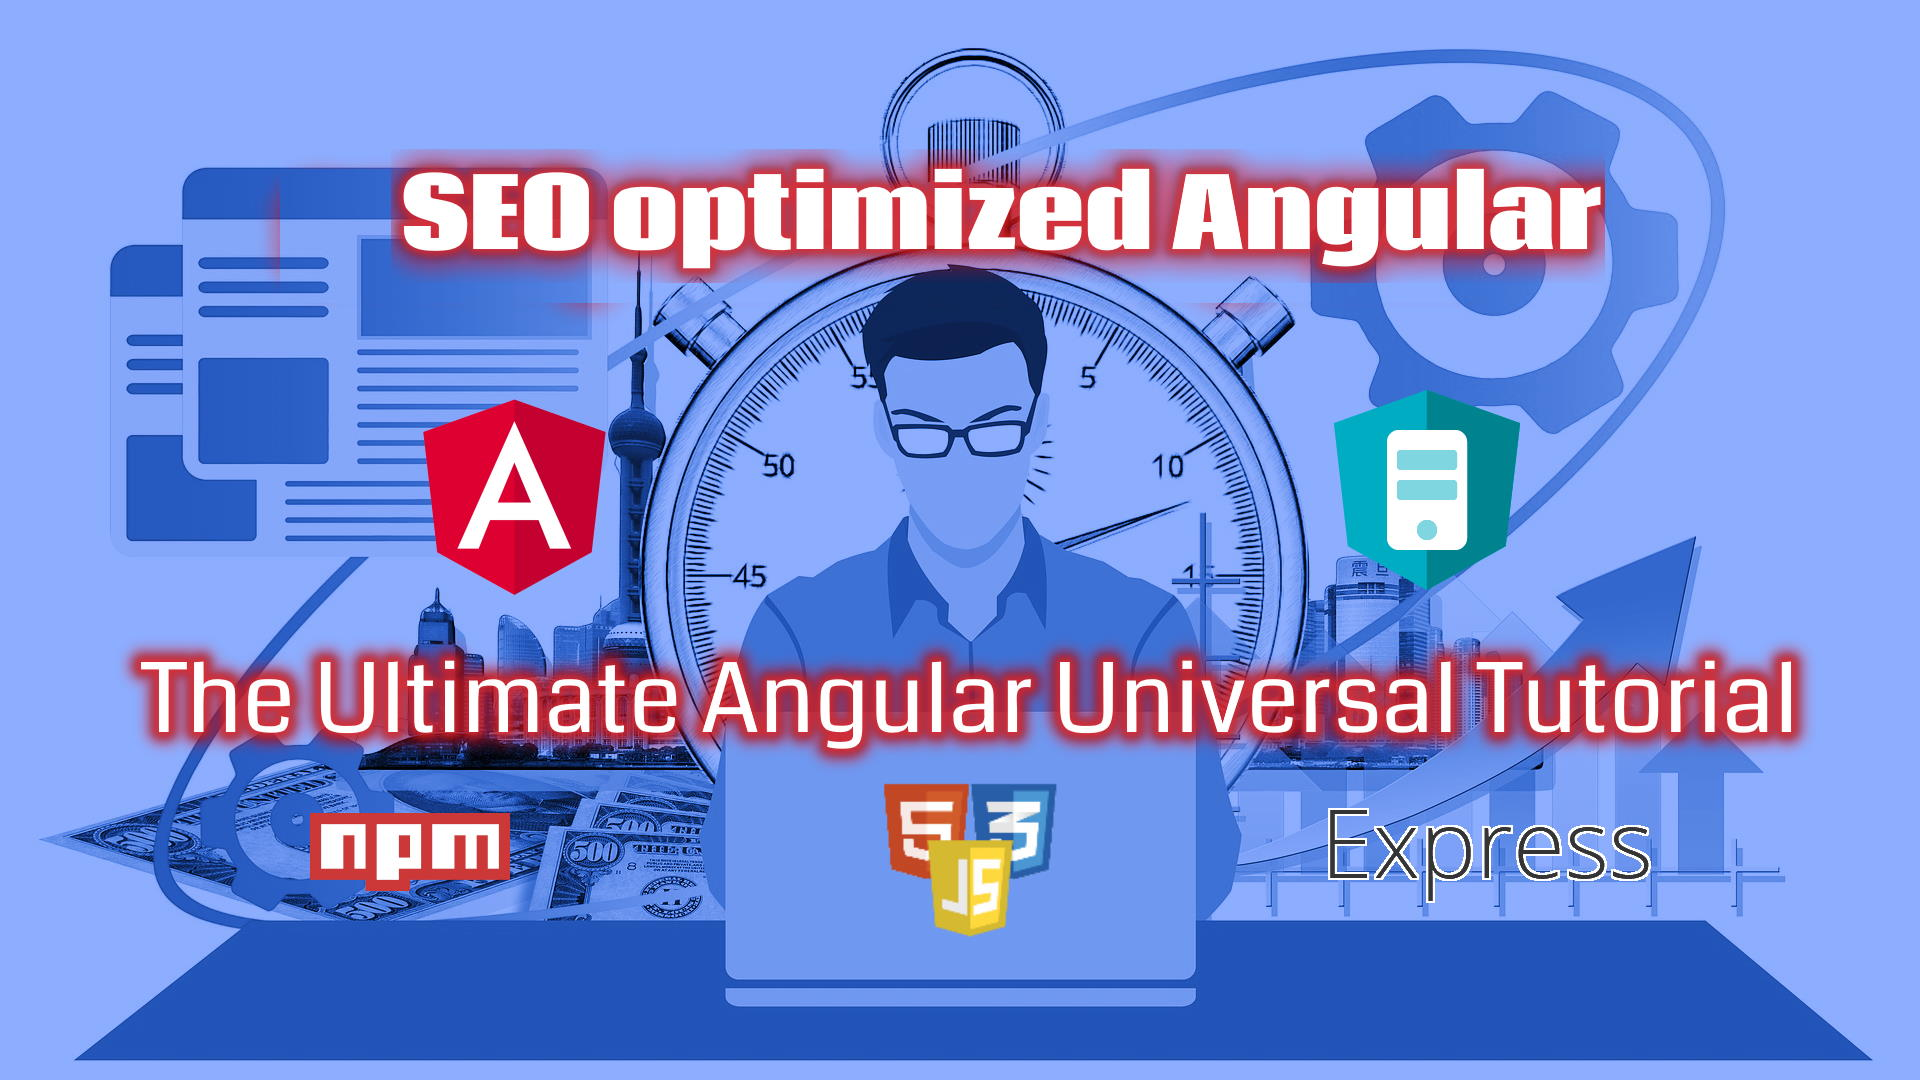 SEO optimized Angular - The Ultimate Angular Universal Tutorial